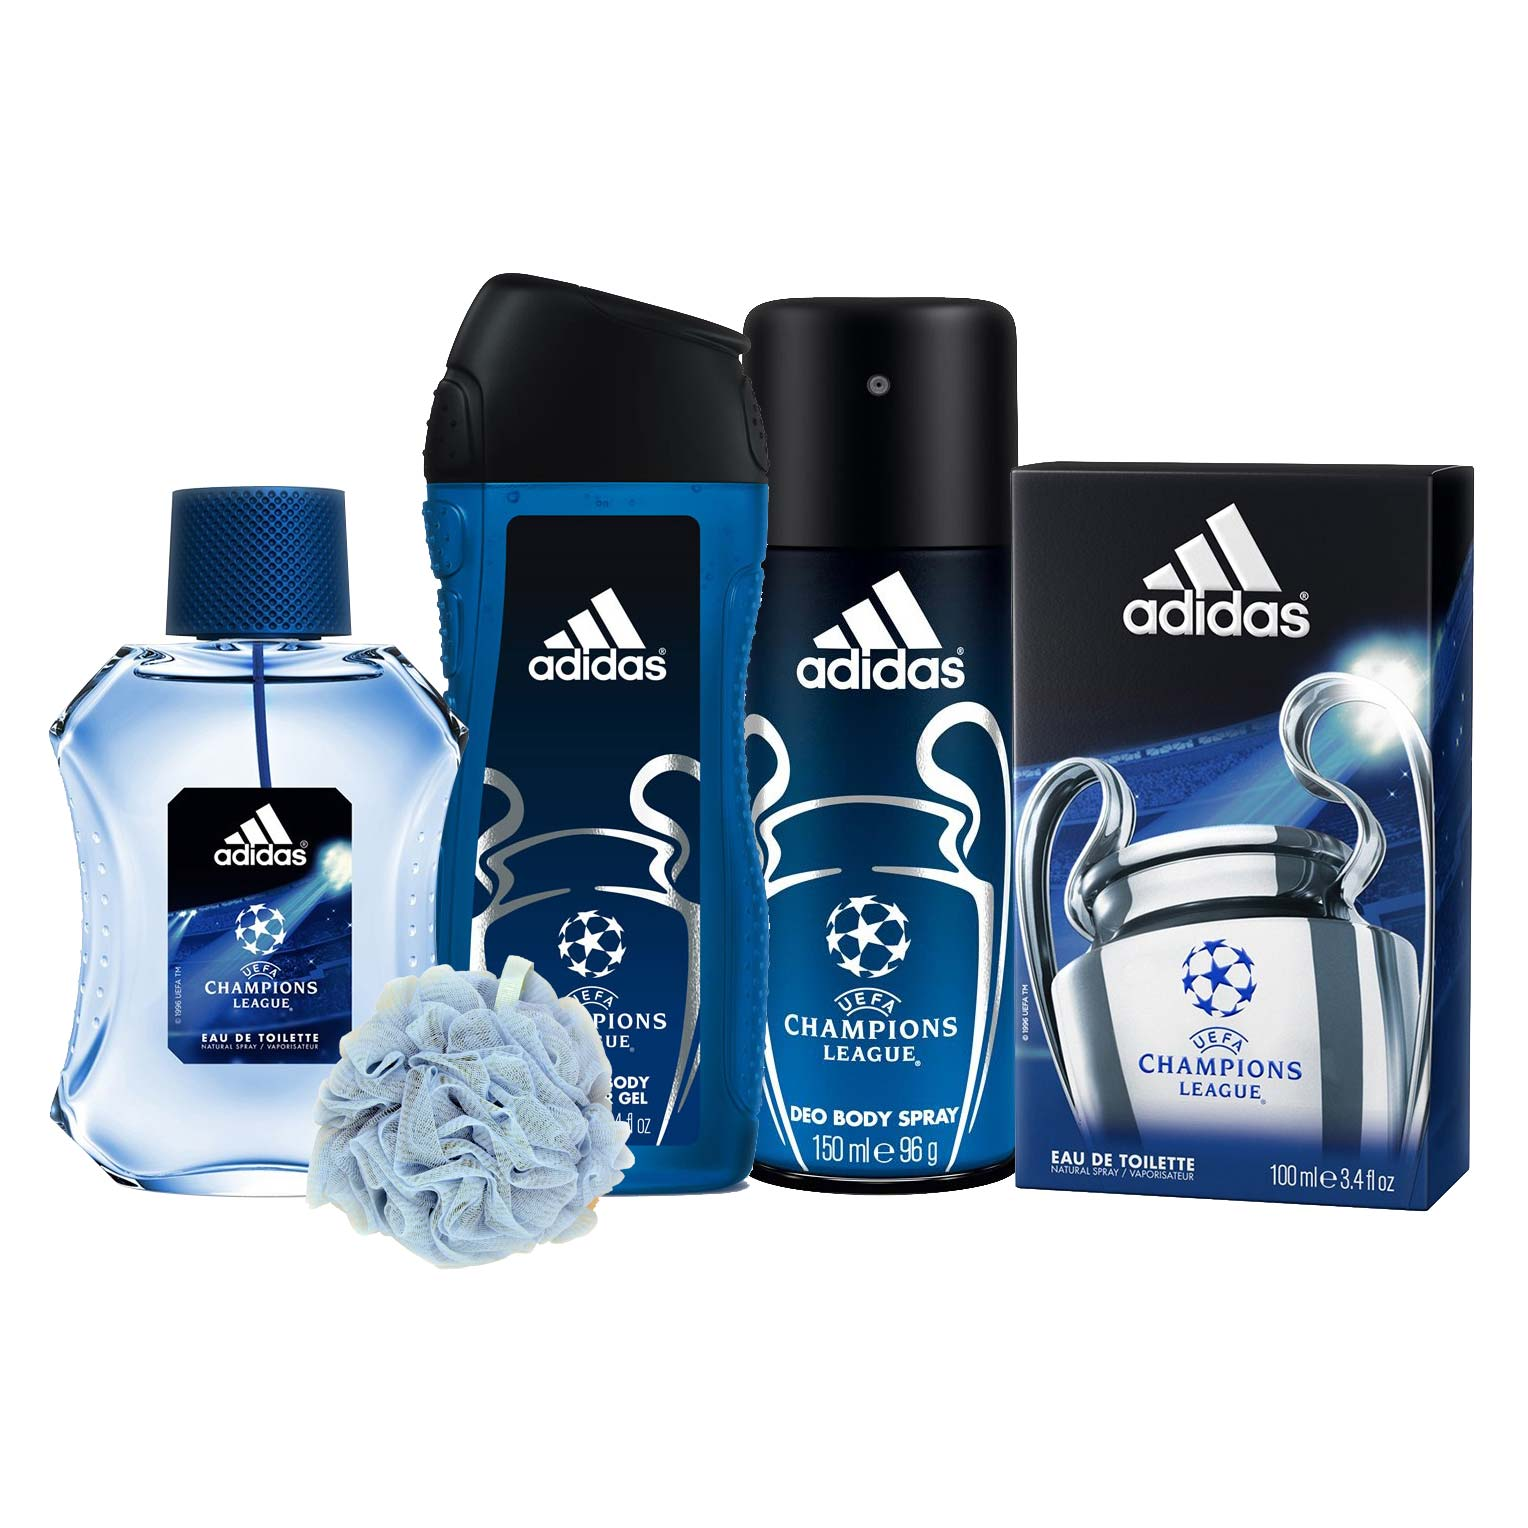 Tratamiento Listo seta  Buy Adidas UEFA Champions League Perfume; Deodorant; Shower Gel And Loofah  Combo Set for men online at lowest price @ DeoBazaar.com